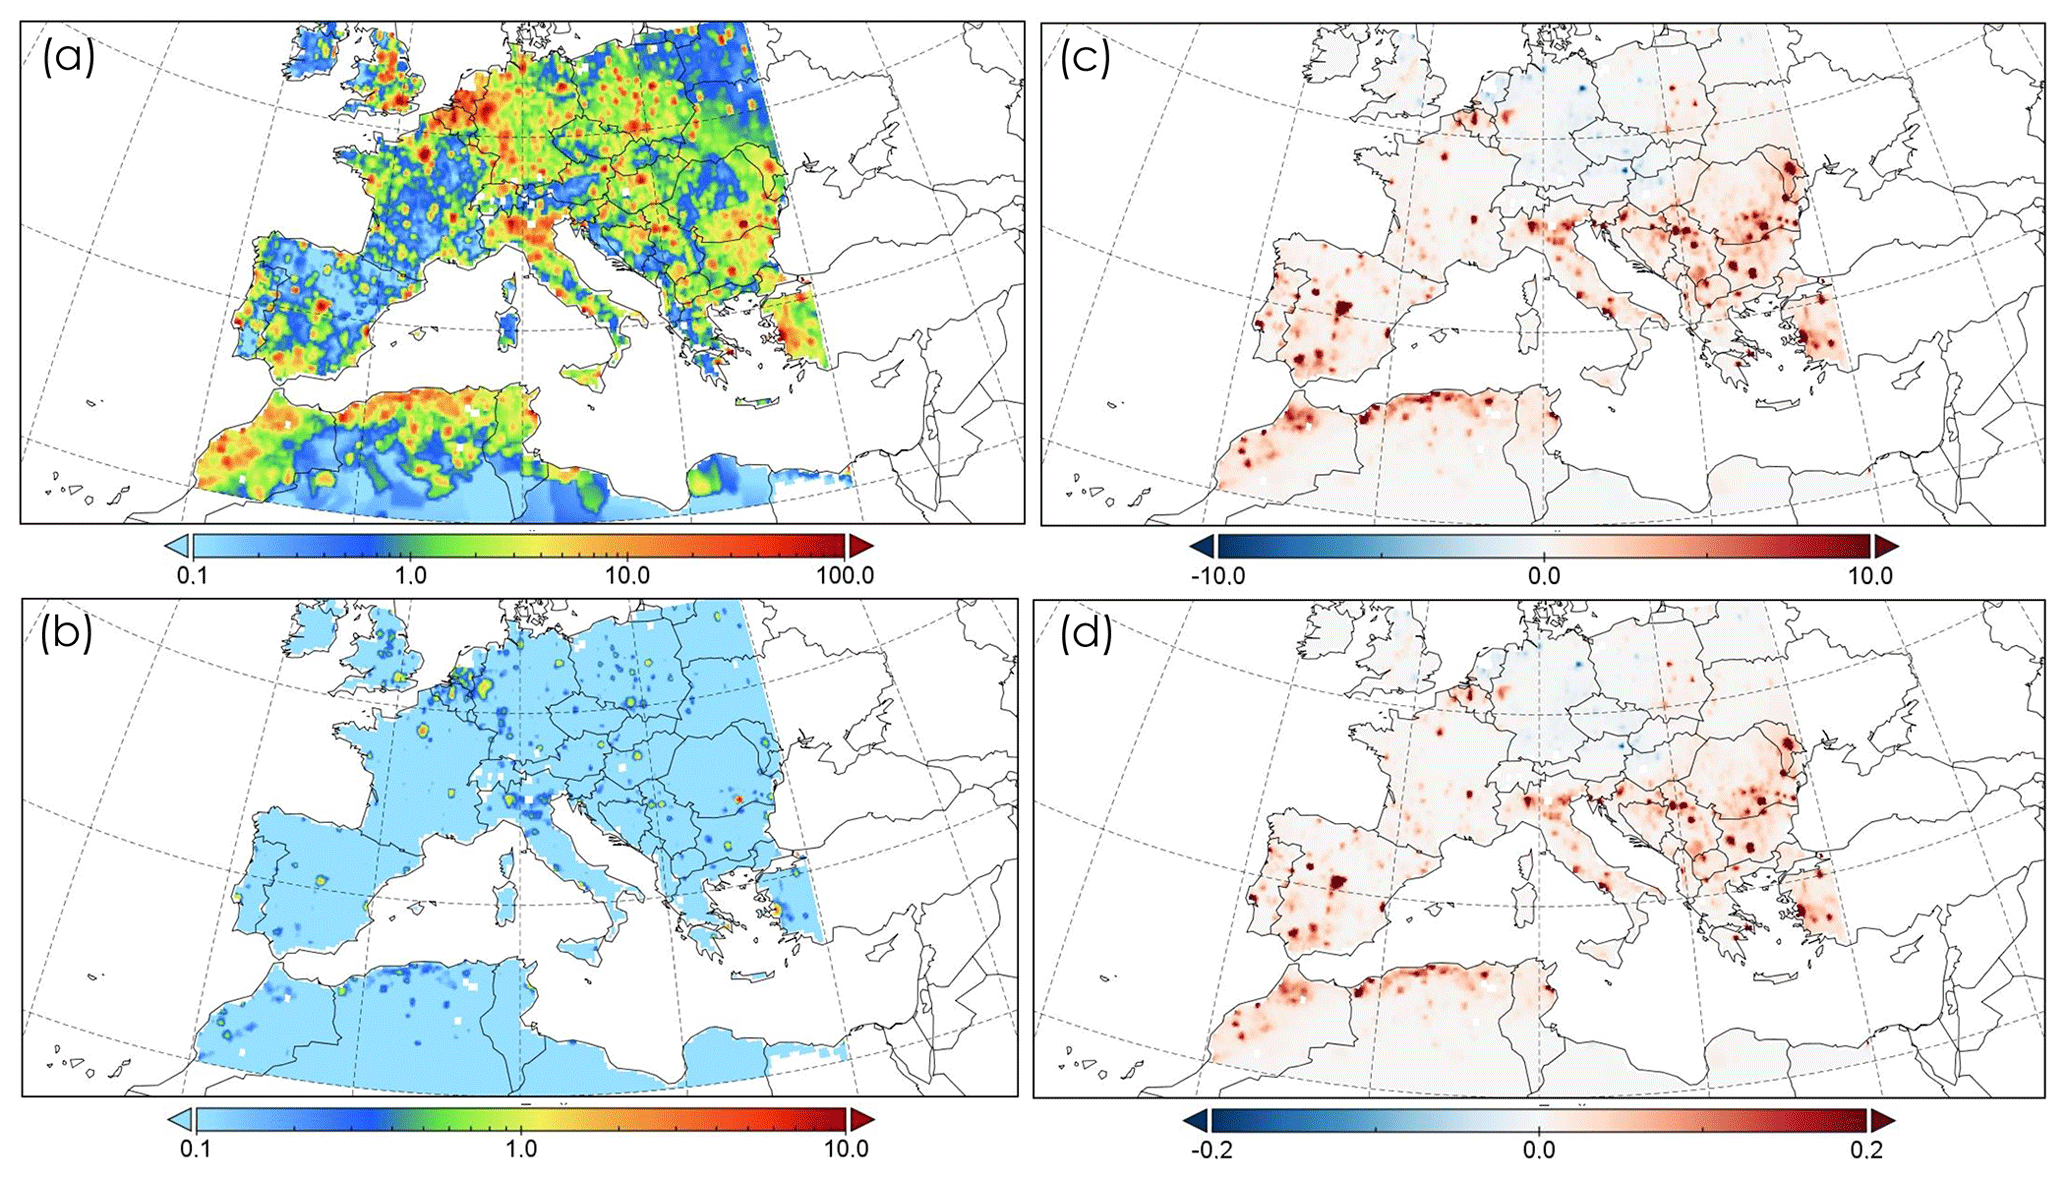 ACP - Isolating the climate change impacts on air-pollution-related